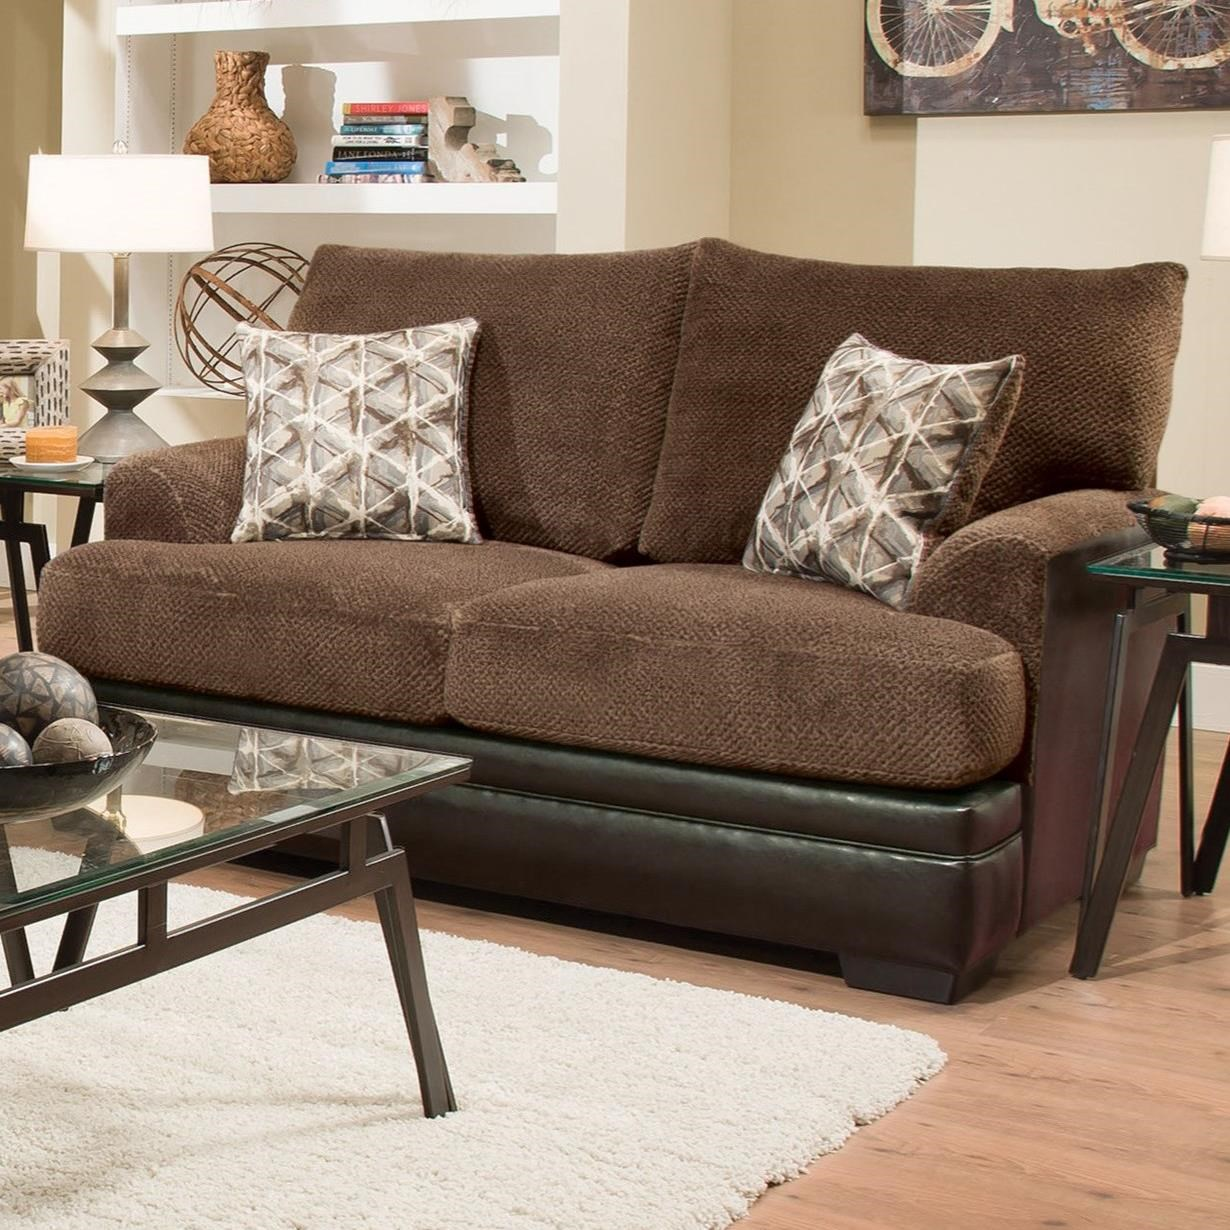 Albany 8640 Loveseat - Item Number: 8640-10-GENS-34118